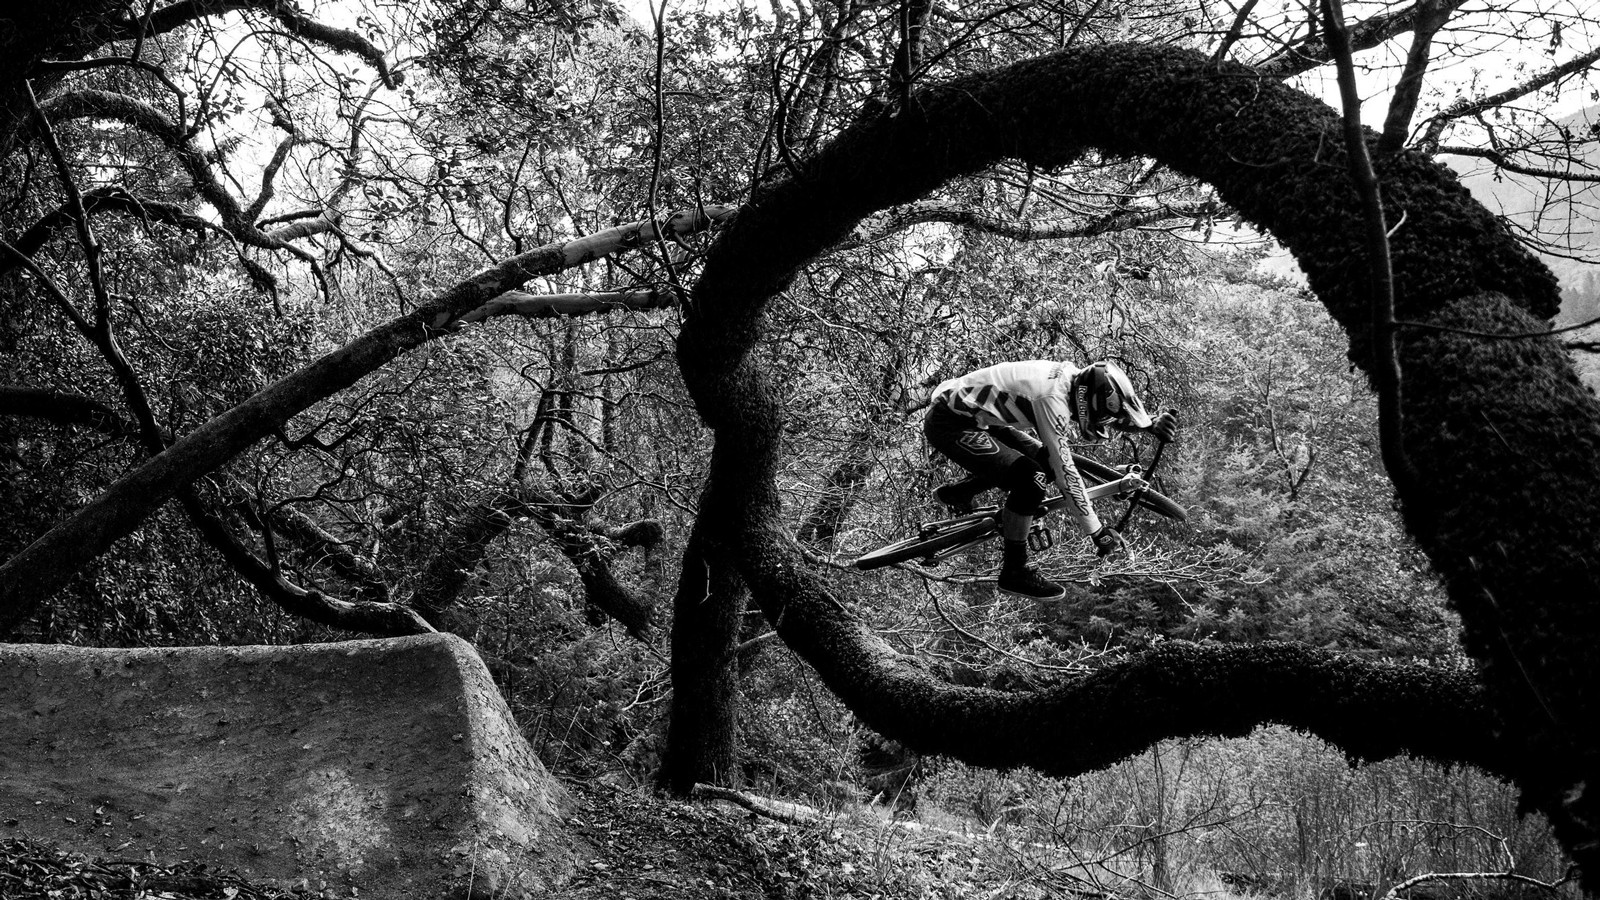 Brandon Semenuk simply rides in a world of his own